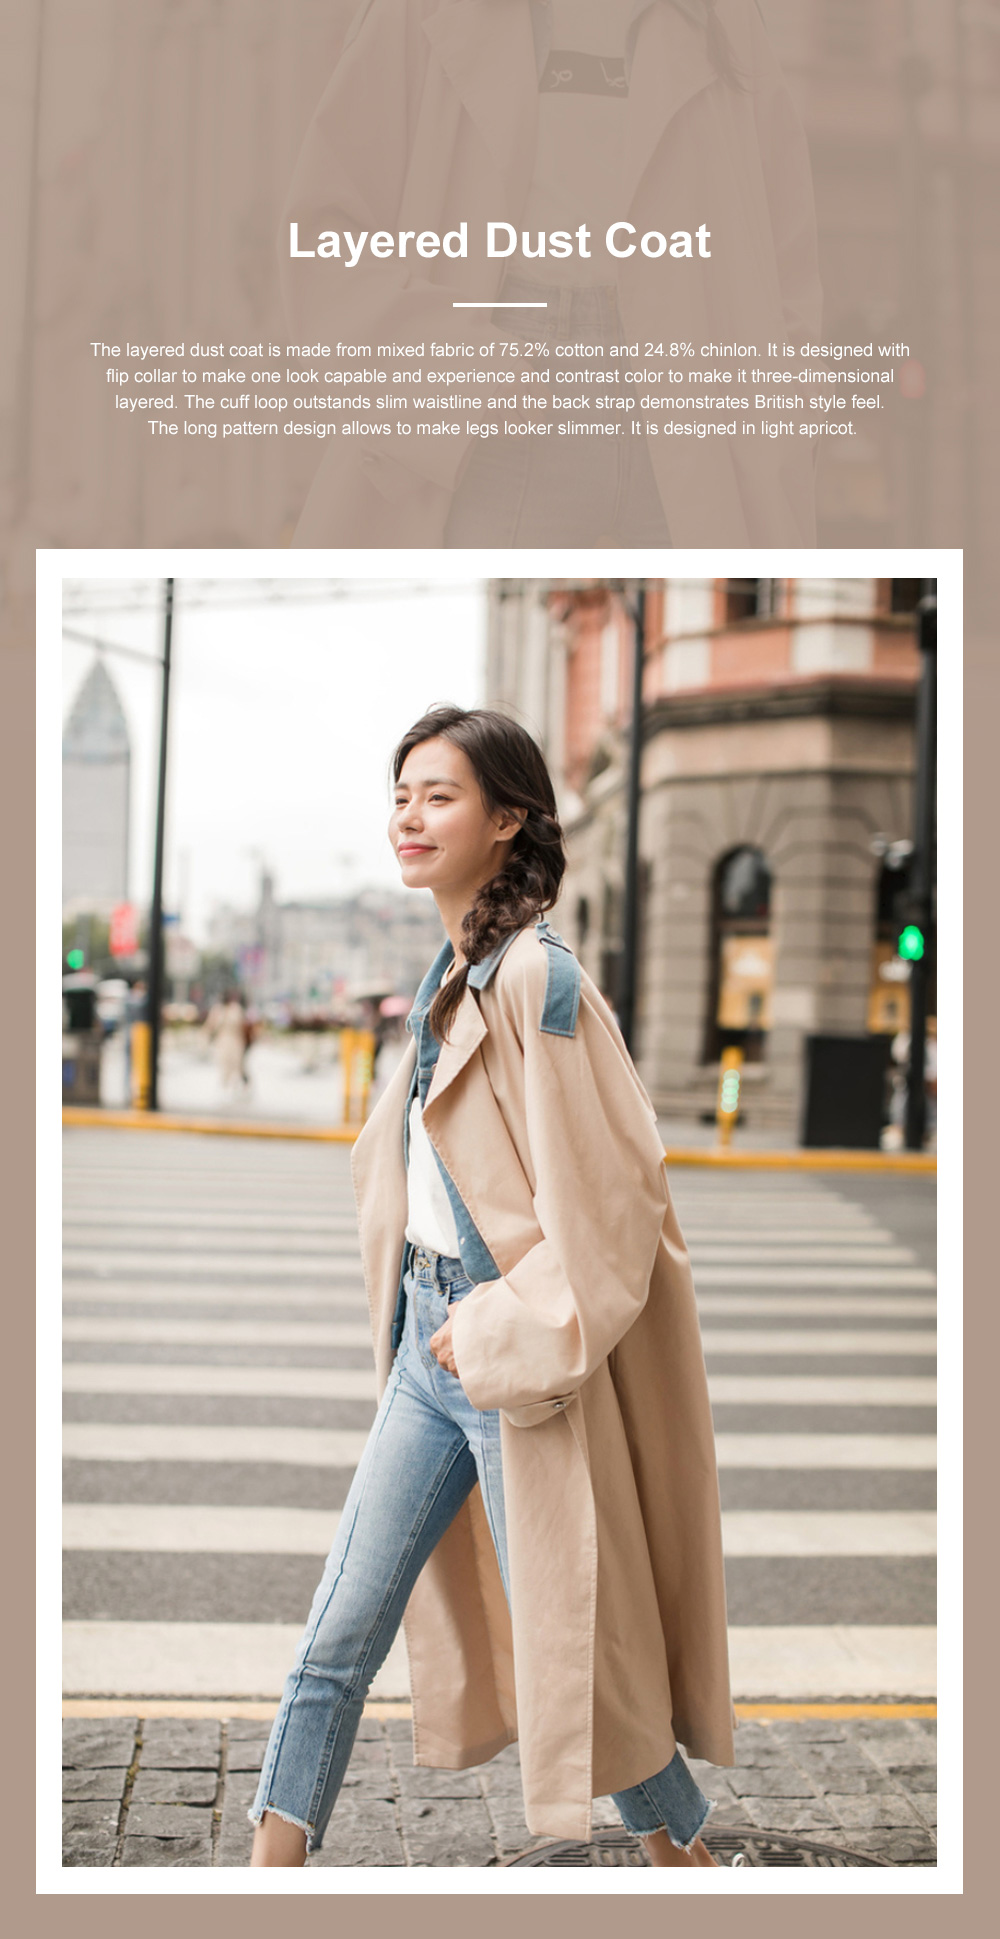 Light Apricot Layered Dust Coat British Style Straight Wind Coat for Women Contrast Colored Chic Turndown Straight Windbreaker 0